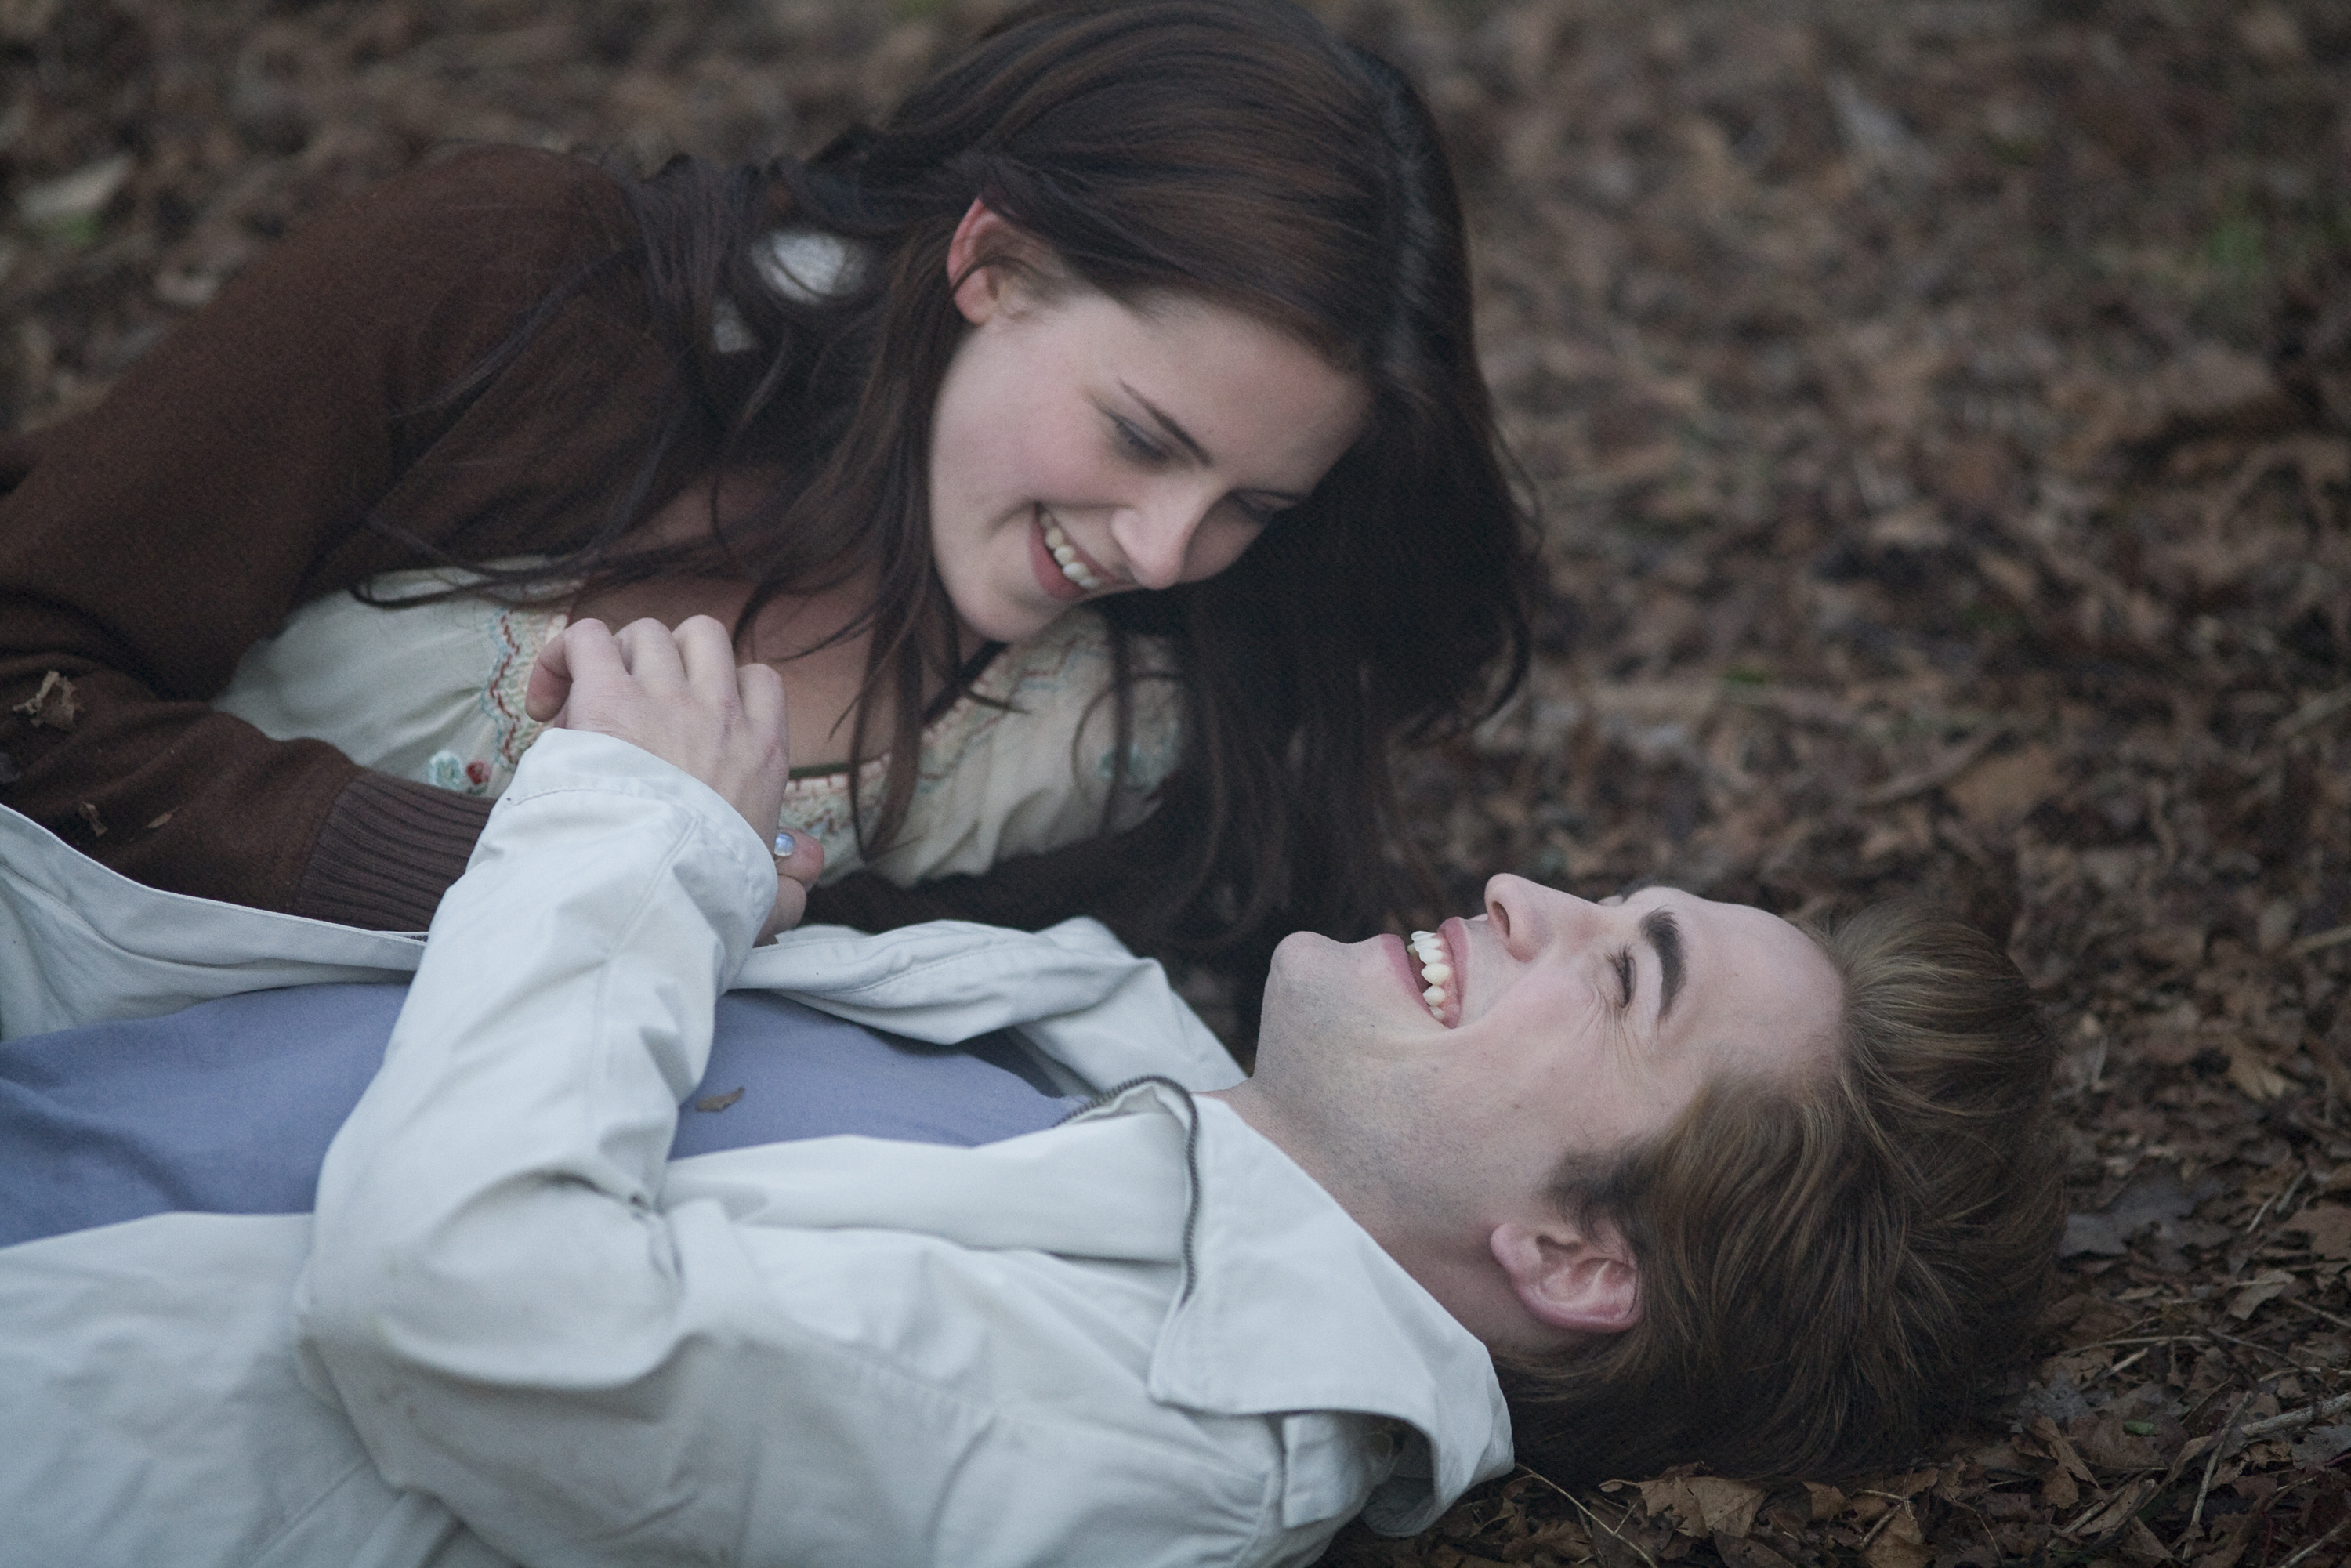 edward and bella in real life dating I'm obsesed with twilight love the books and movie but was wondering if robert pattinson and kristin stewart are dating in real life (rob plays edward cullen and kristin plays bella in.